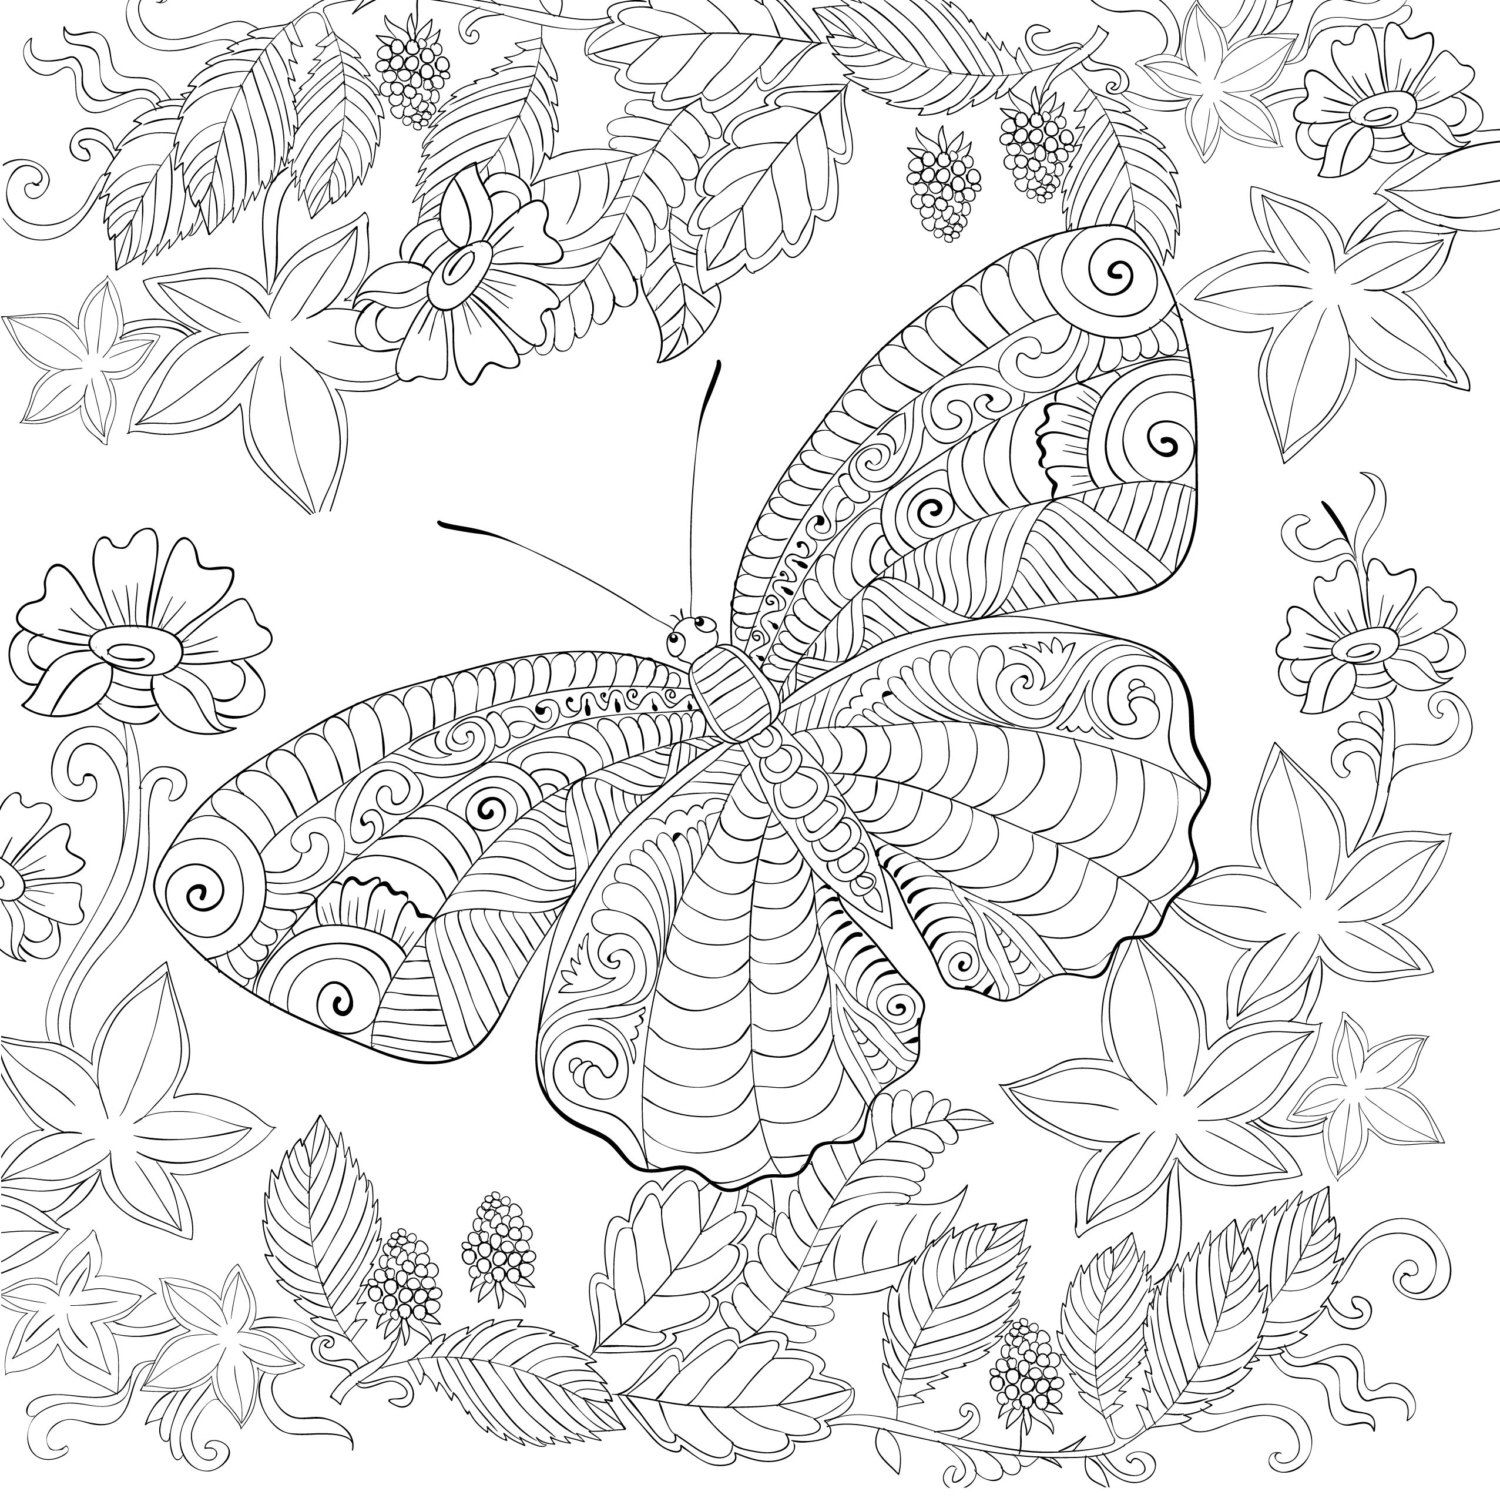 Pin On Insects Colouring Pages [ 1498 x 1500 Pixel ]